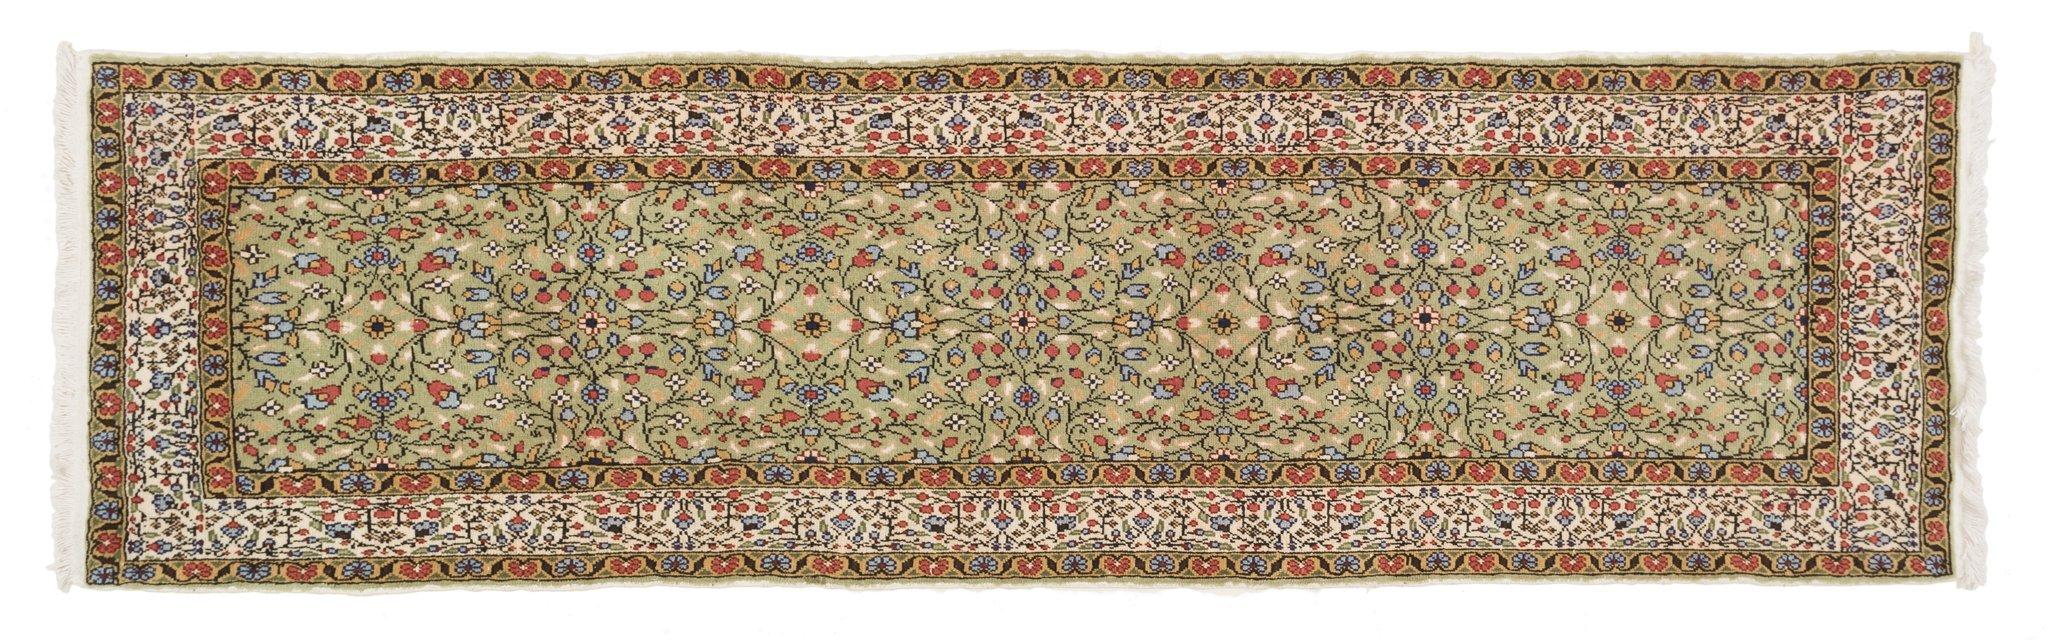 Runners Varied Sizes Tagged Vintage Rugs Revival Rugs